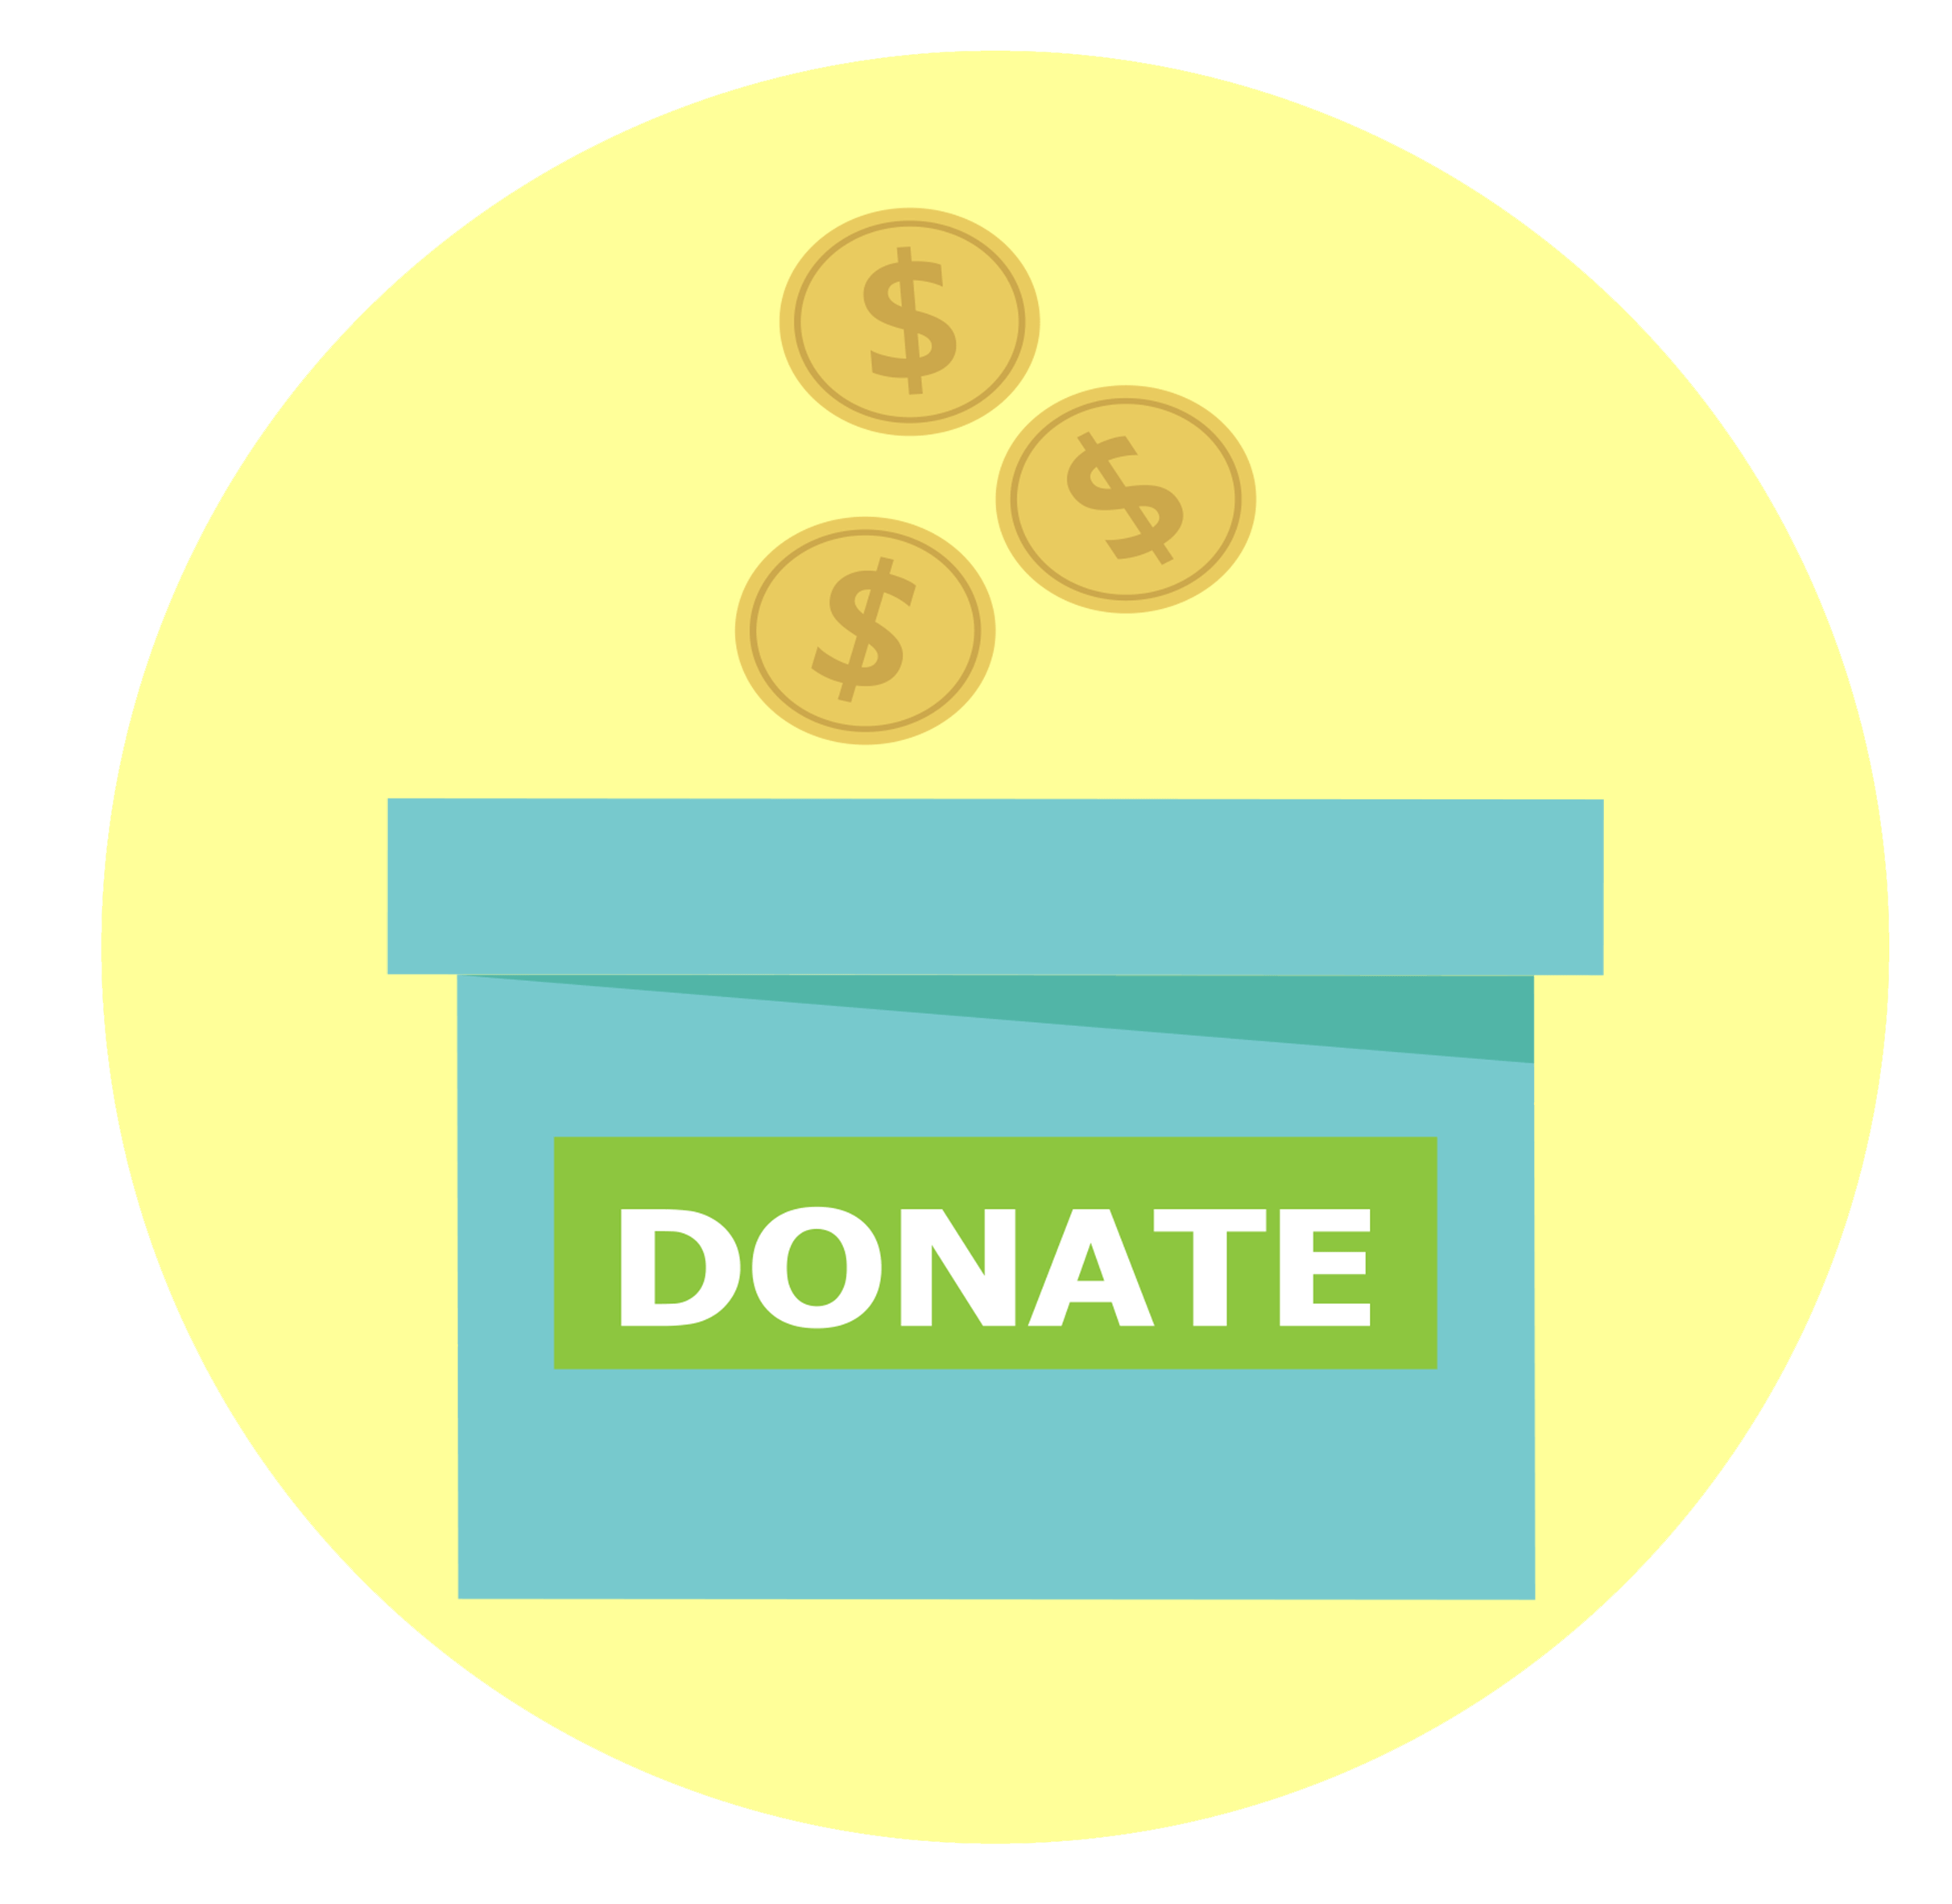 Donate. with yellow background